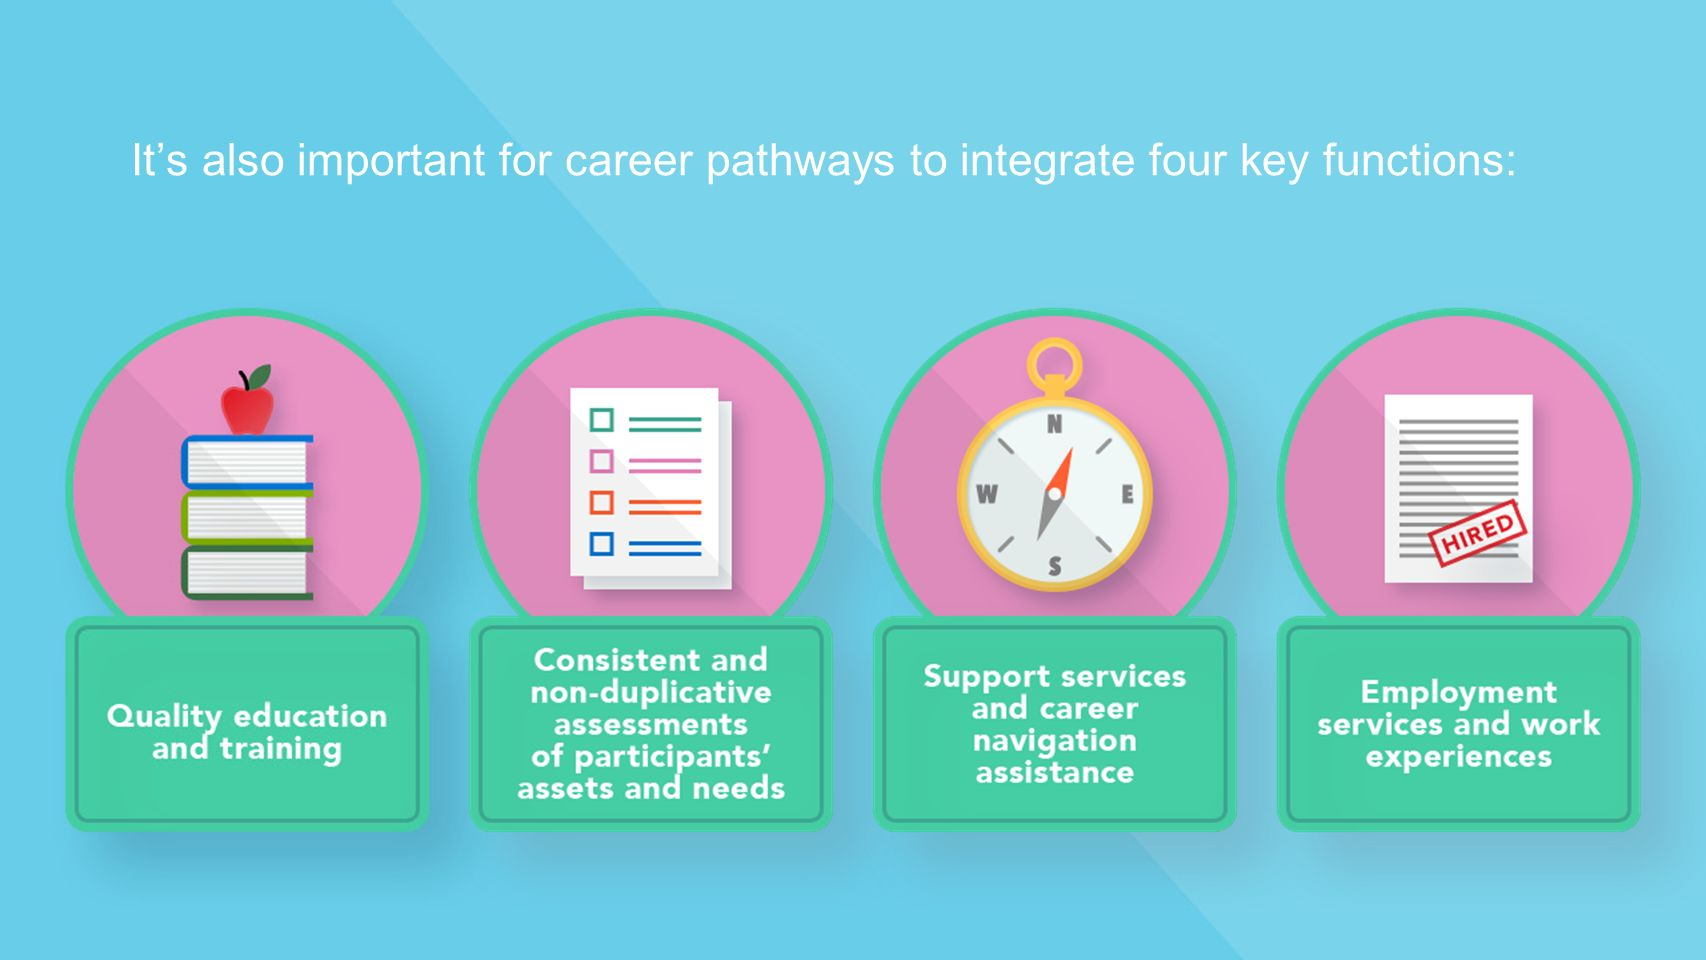 It's also important for career pathways to integrate four key functions: